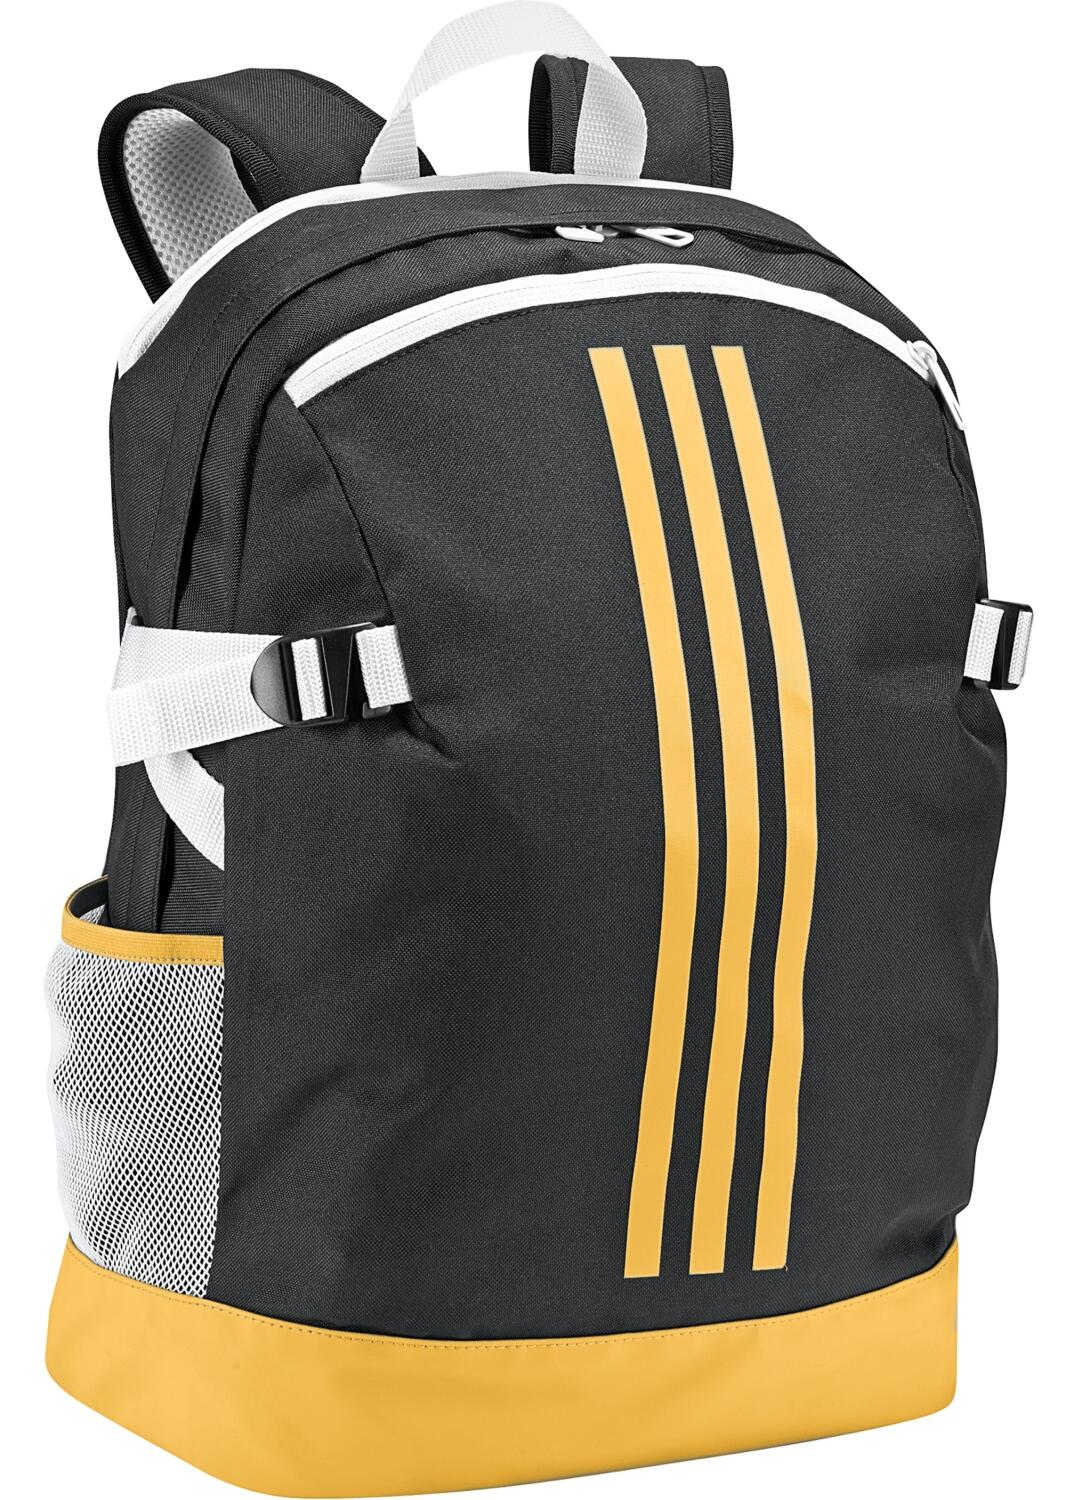 adidas-3-stripes-backpack-power-iv-m-rucksack-farbe-black-activ-gold-activ-gold-